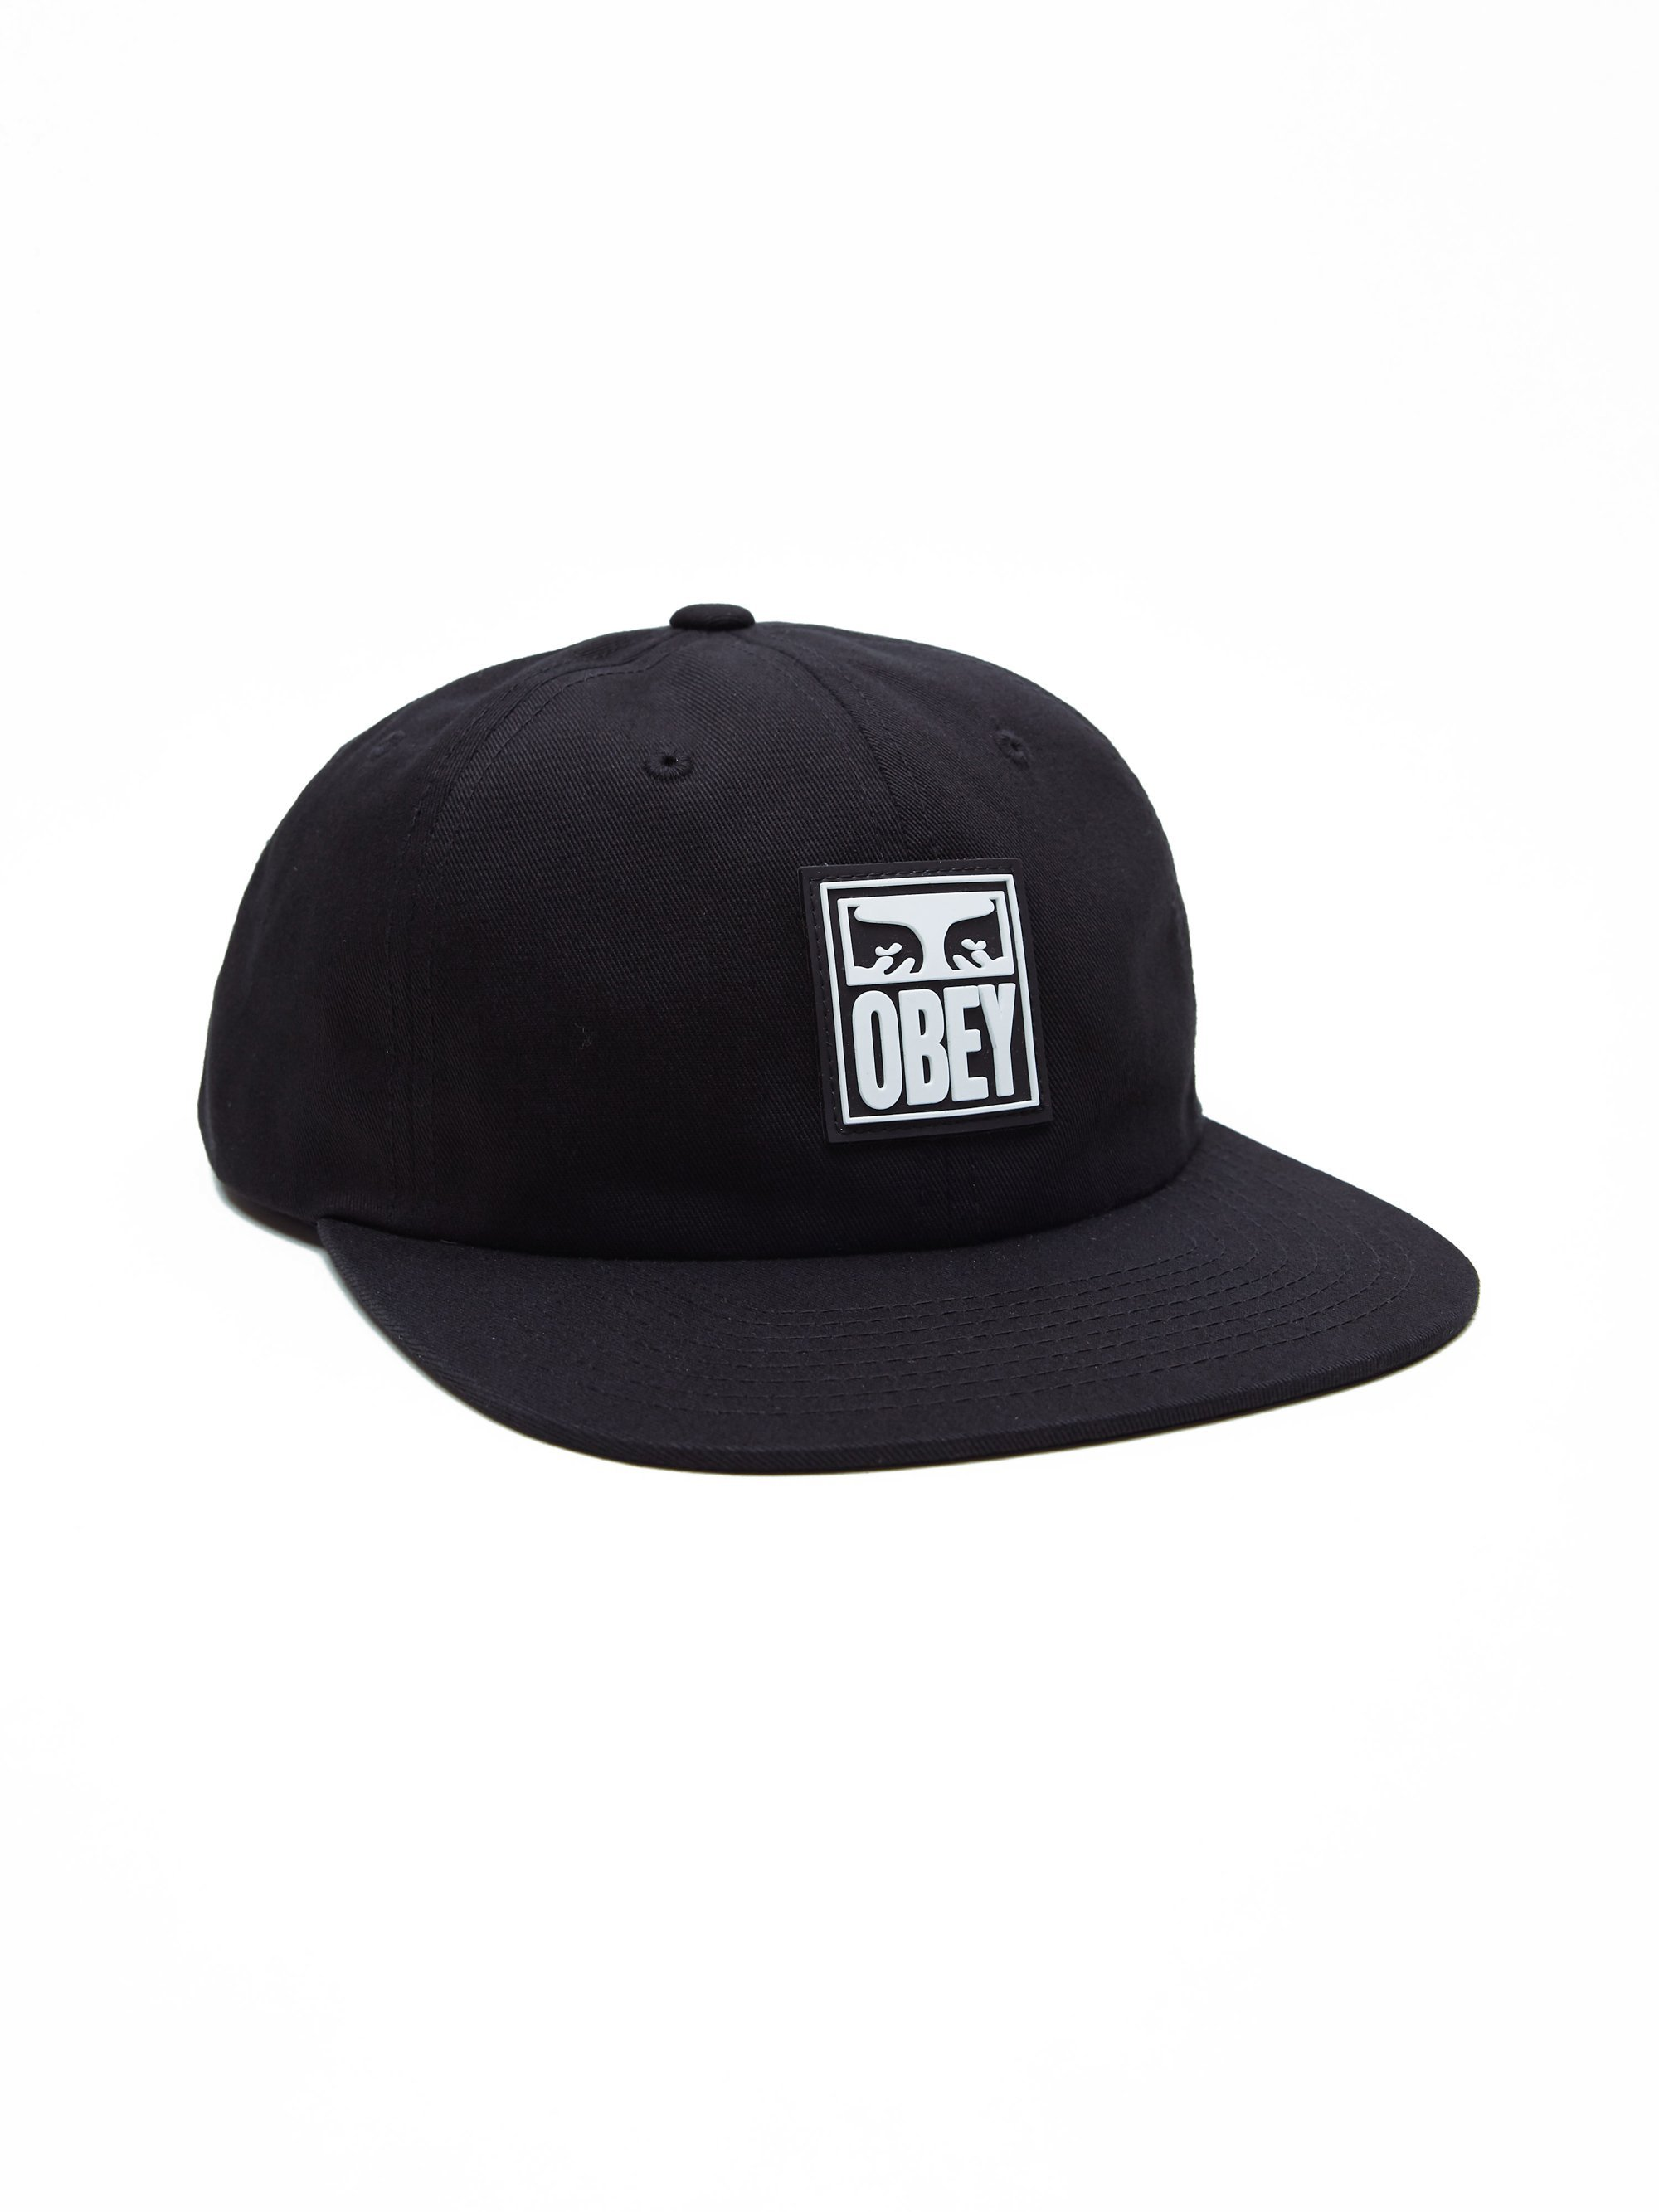 OBEY_Vanish_6_Panel_Snapback_100580188_BLK_1_2000x.jpg